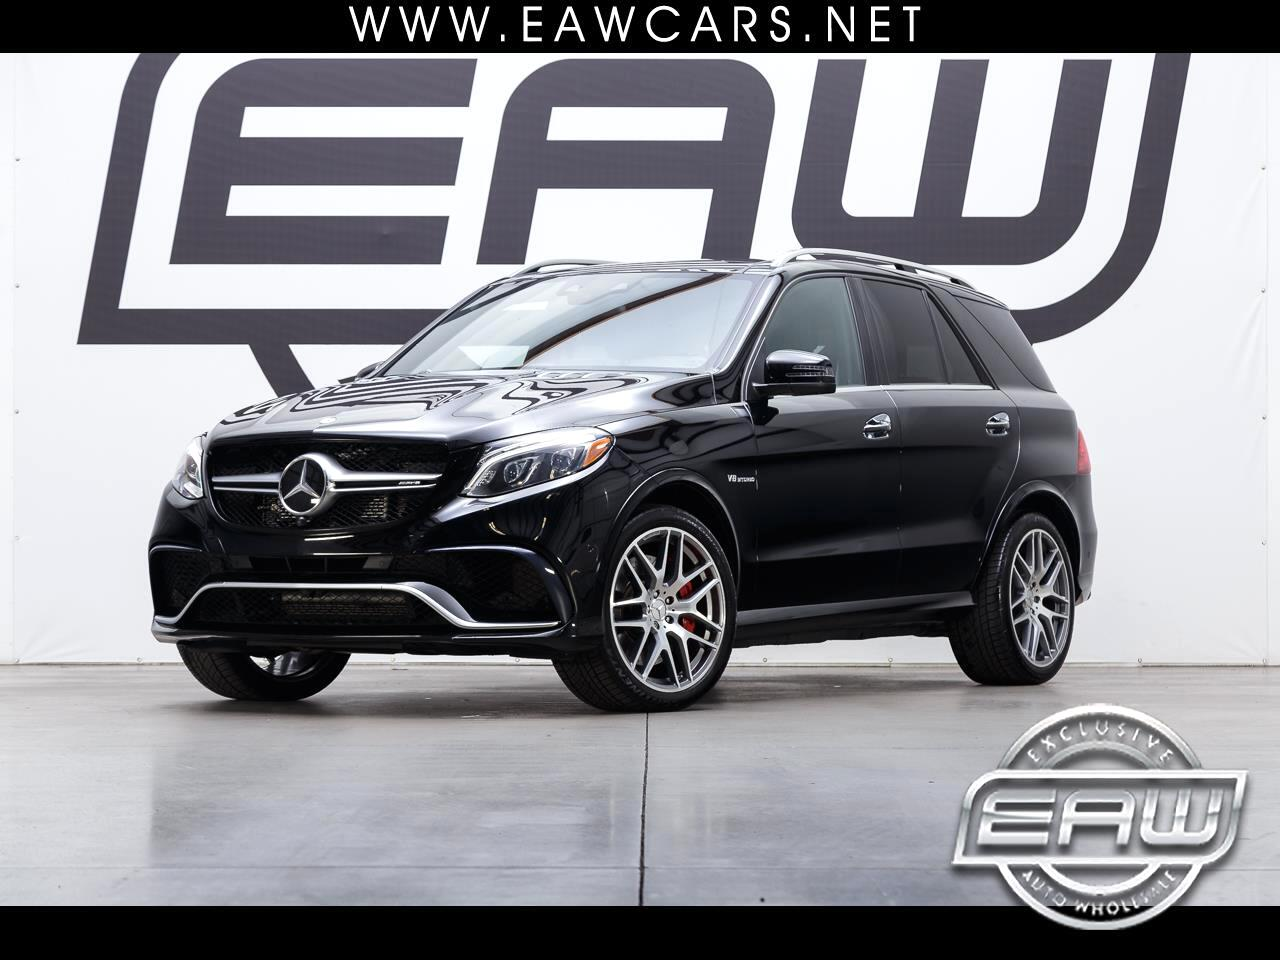 2016 Mercedes-Benz GLE Class GLE63S AMG 4MATIC